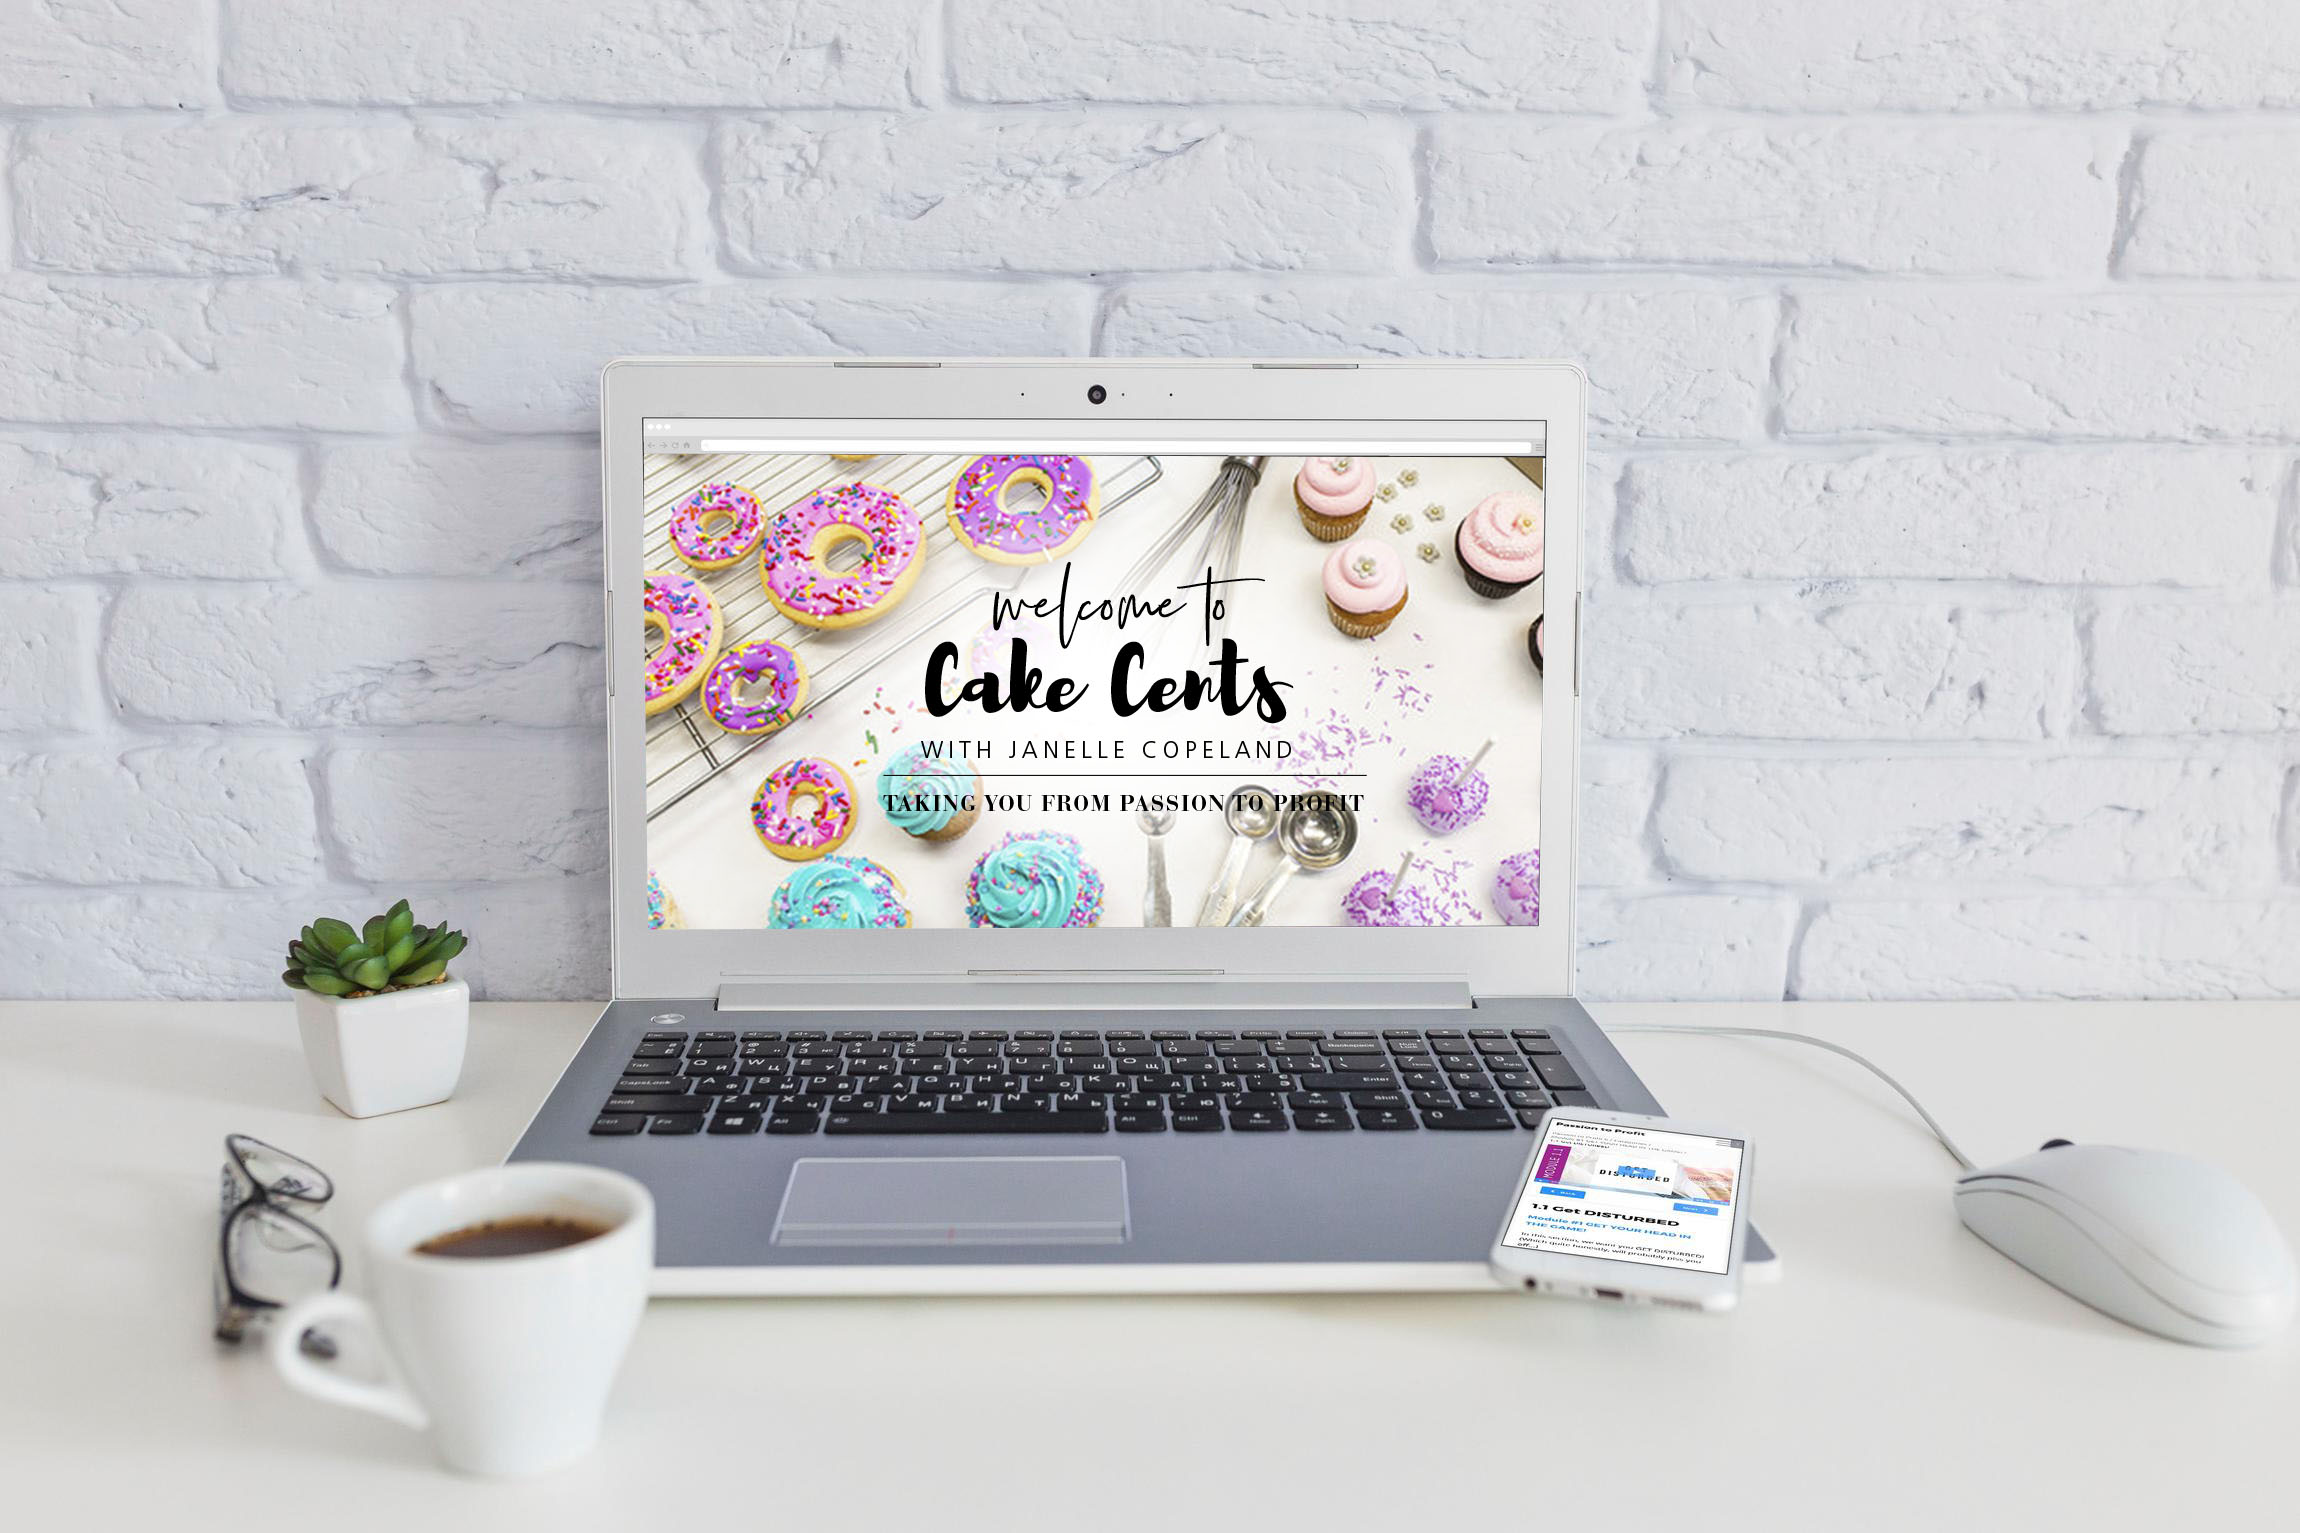 01. CAKE CENTS - Cake Cents is a community for bakers to improve their business skills. Filled with positive and uplifting content, this group is an amazing FREE resource to begin up-leveling your business in order to no longer feel overworked and underpaid. You will have access to over 3,500 other bakers around the world!